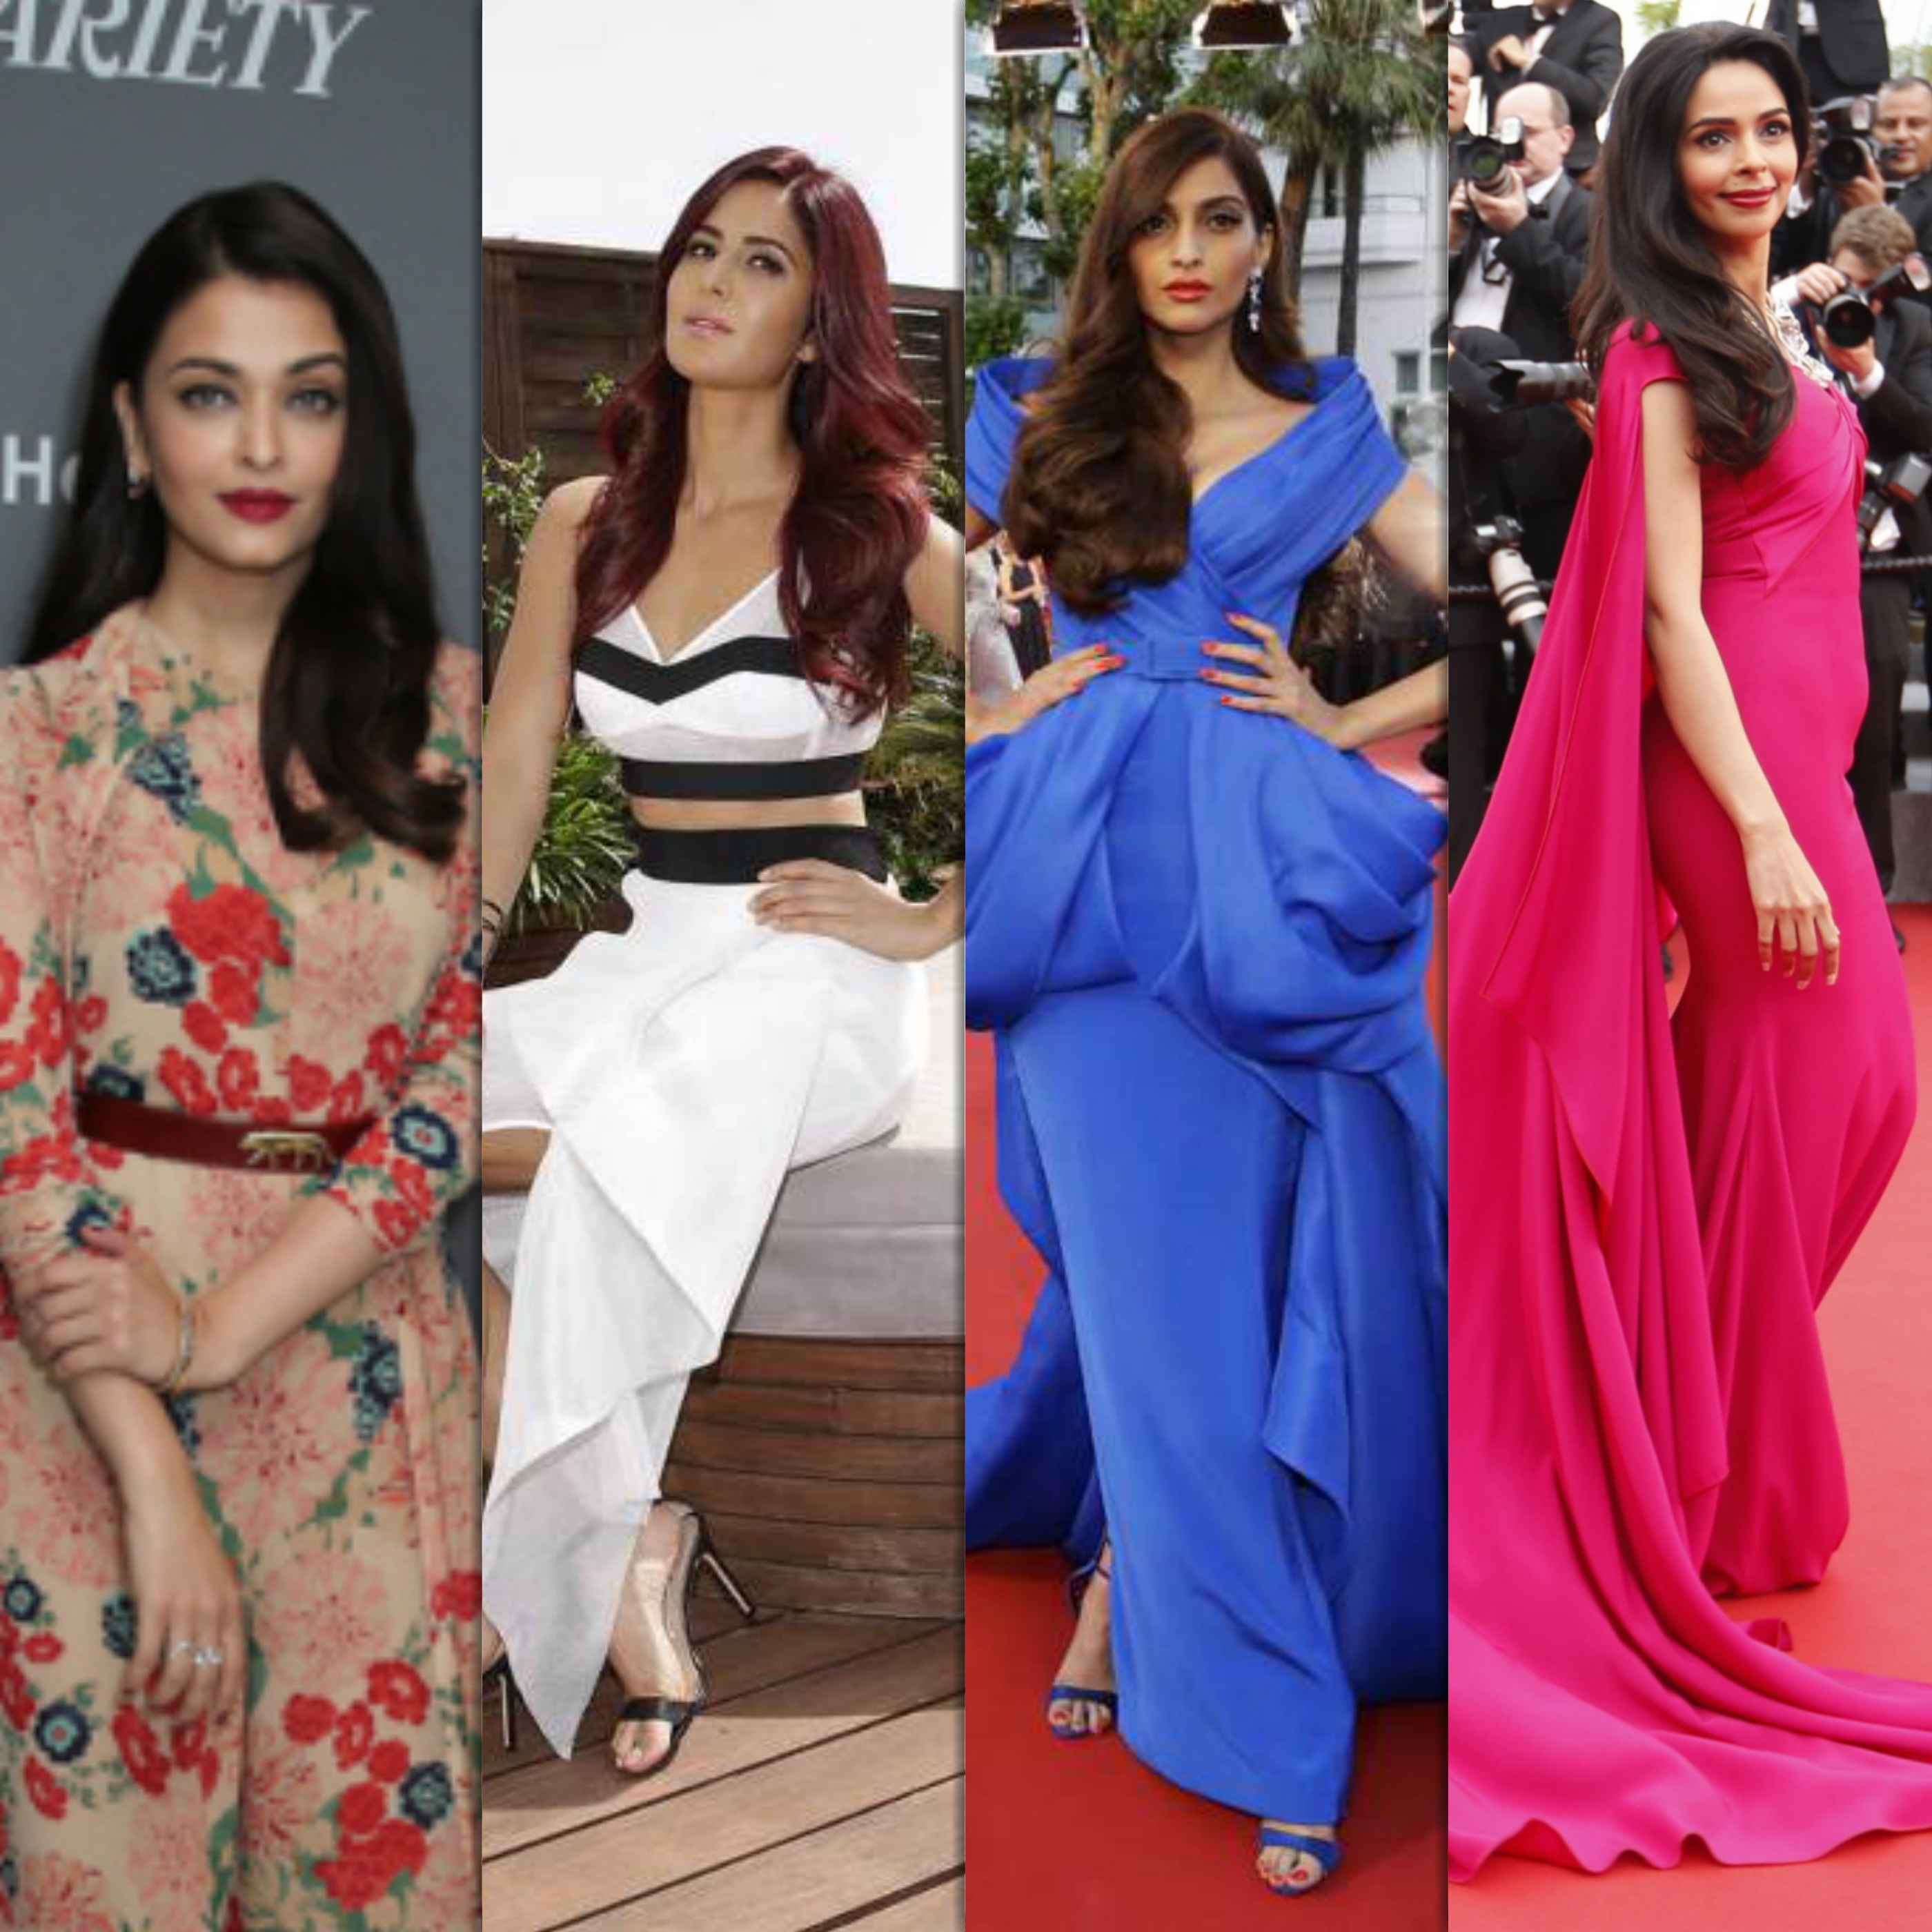 Cannes Film Festival 2015 : Bollywood Celebs on Red Carpet Dresses Outfit